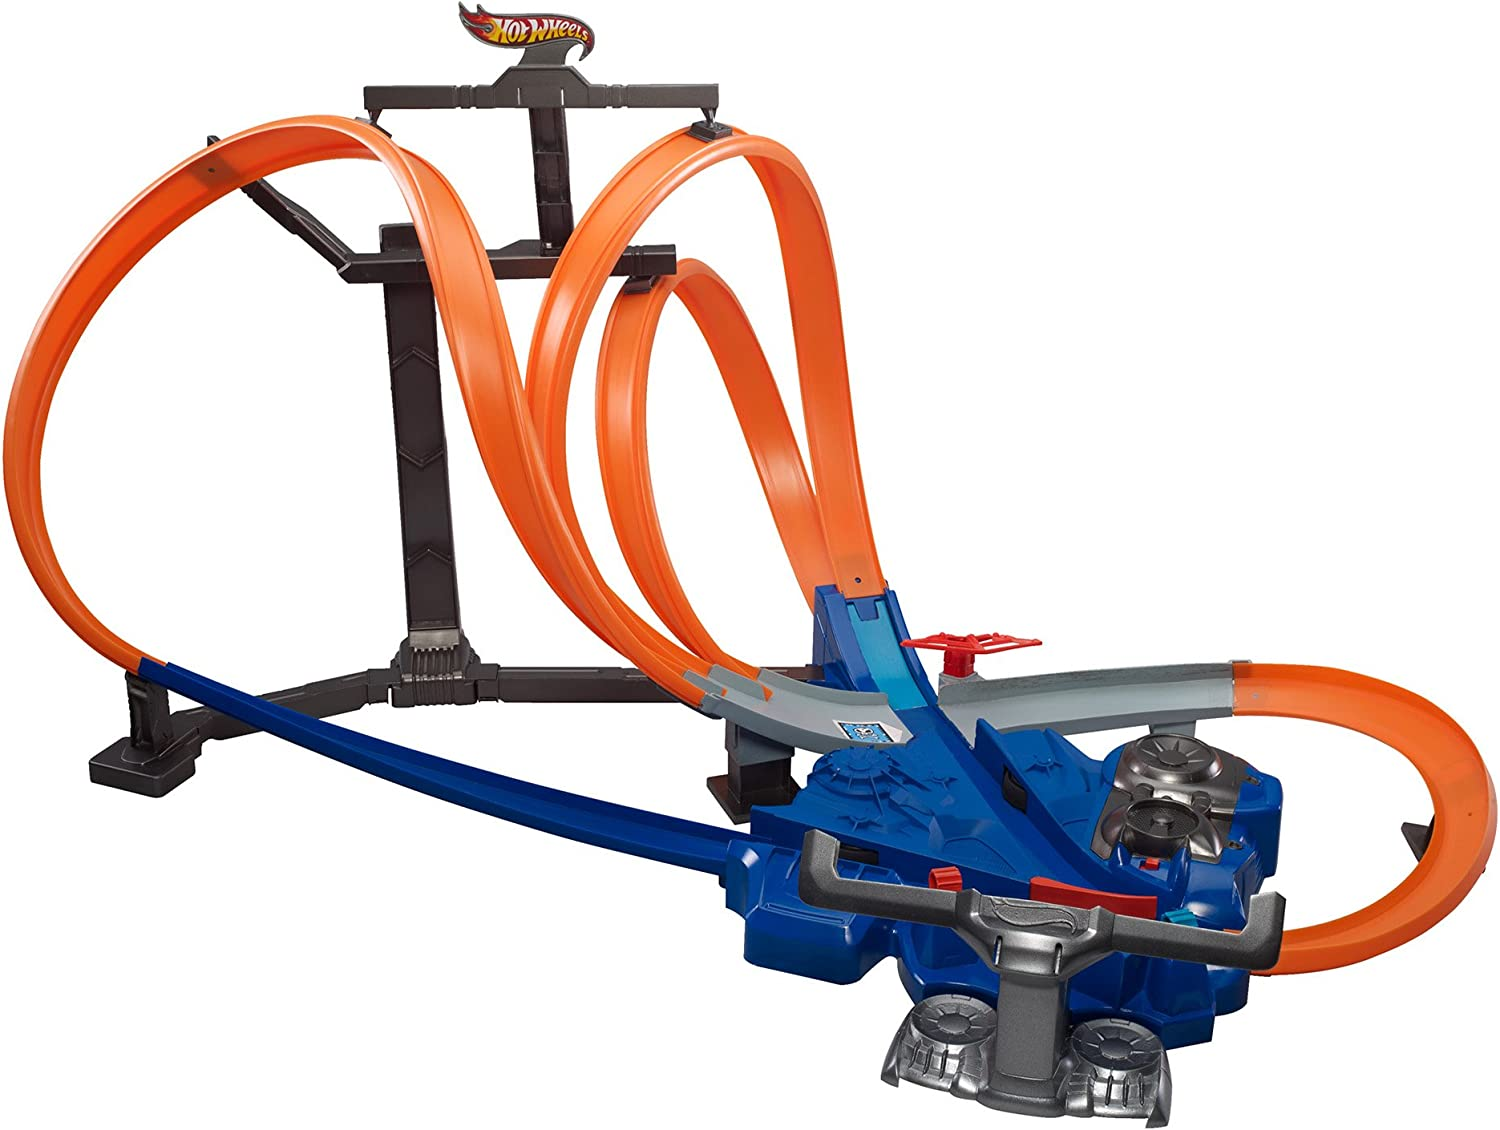 Top 10 Best Hot Wheels Race Track Sets (2020 Review & Buying Guide) 5